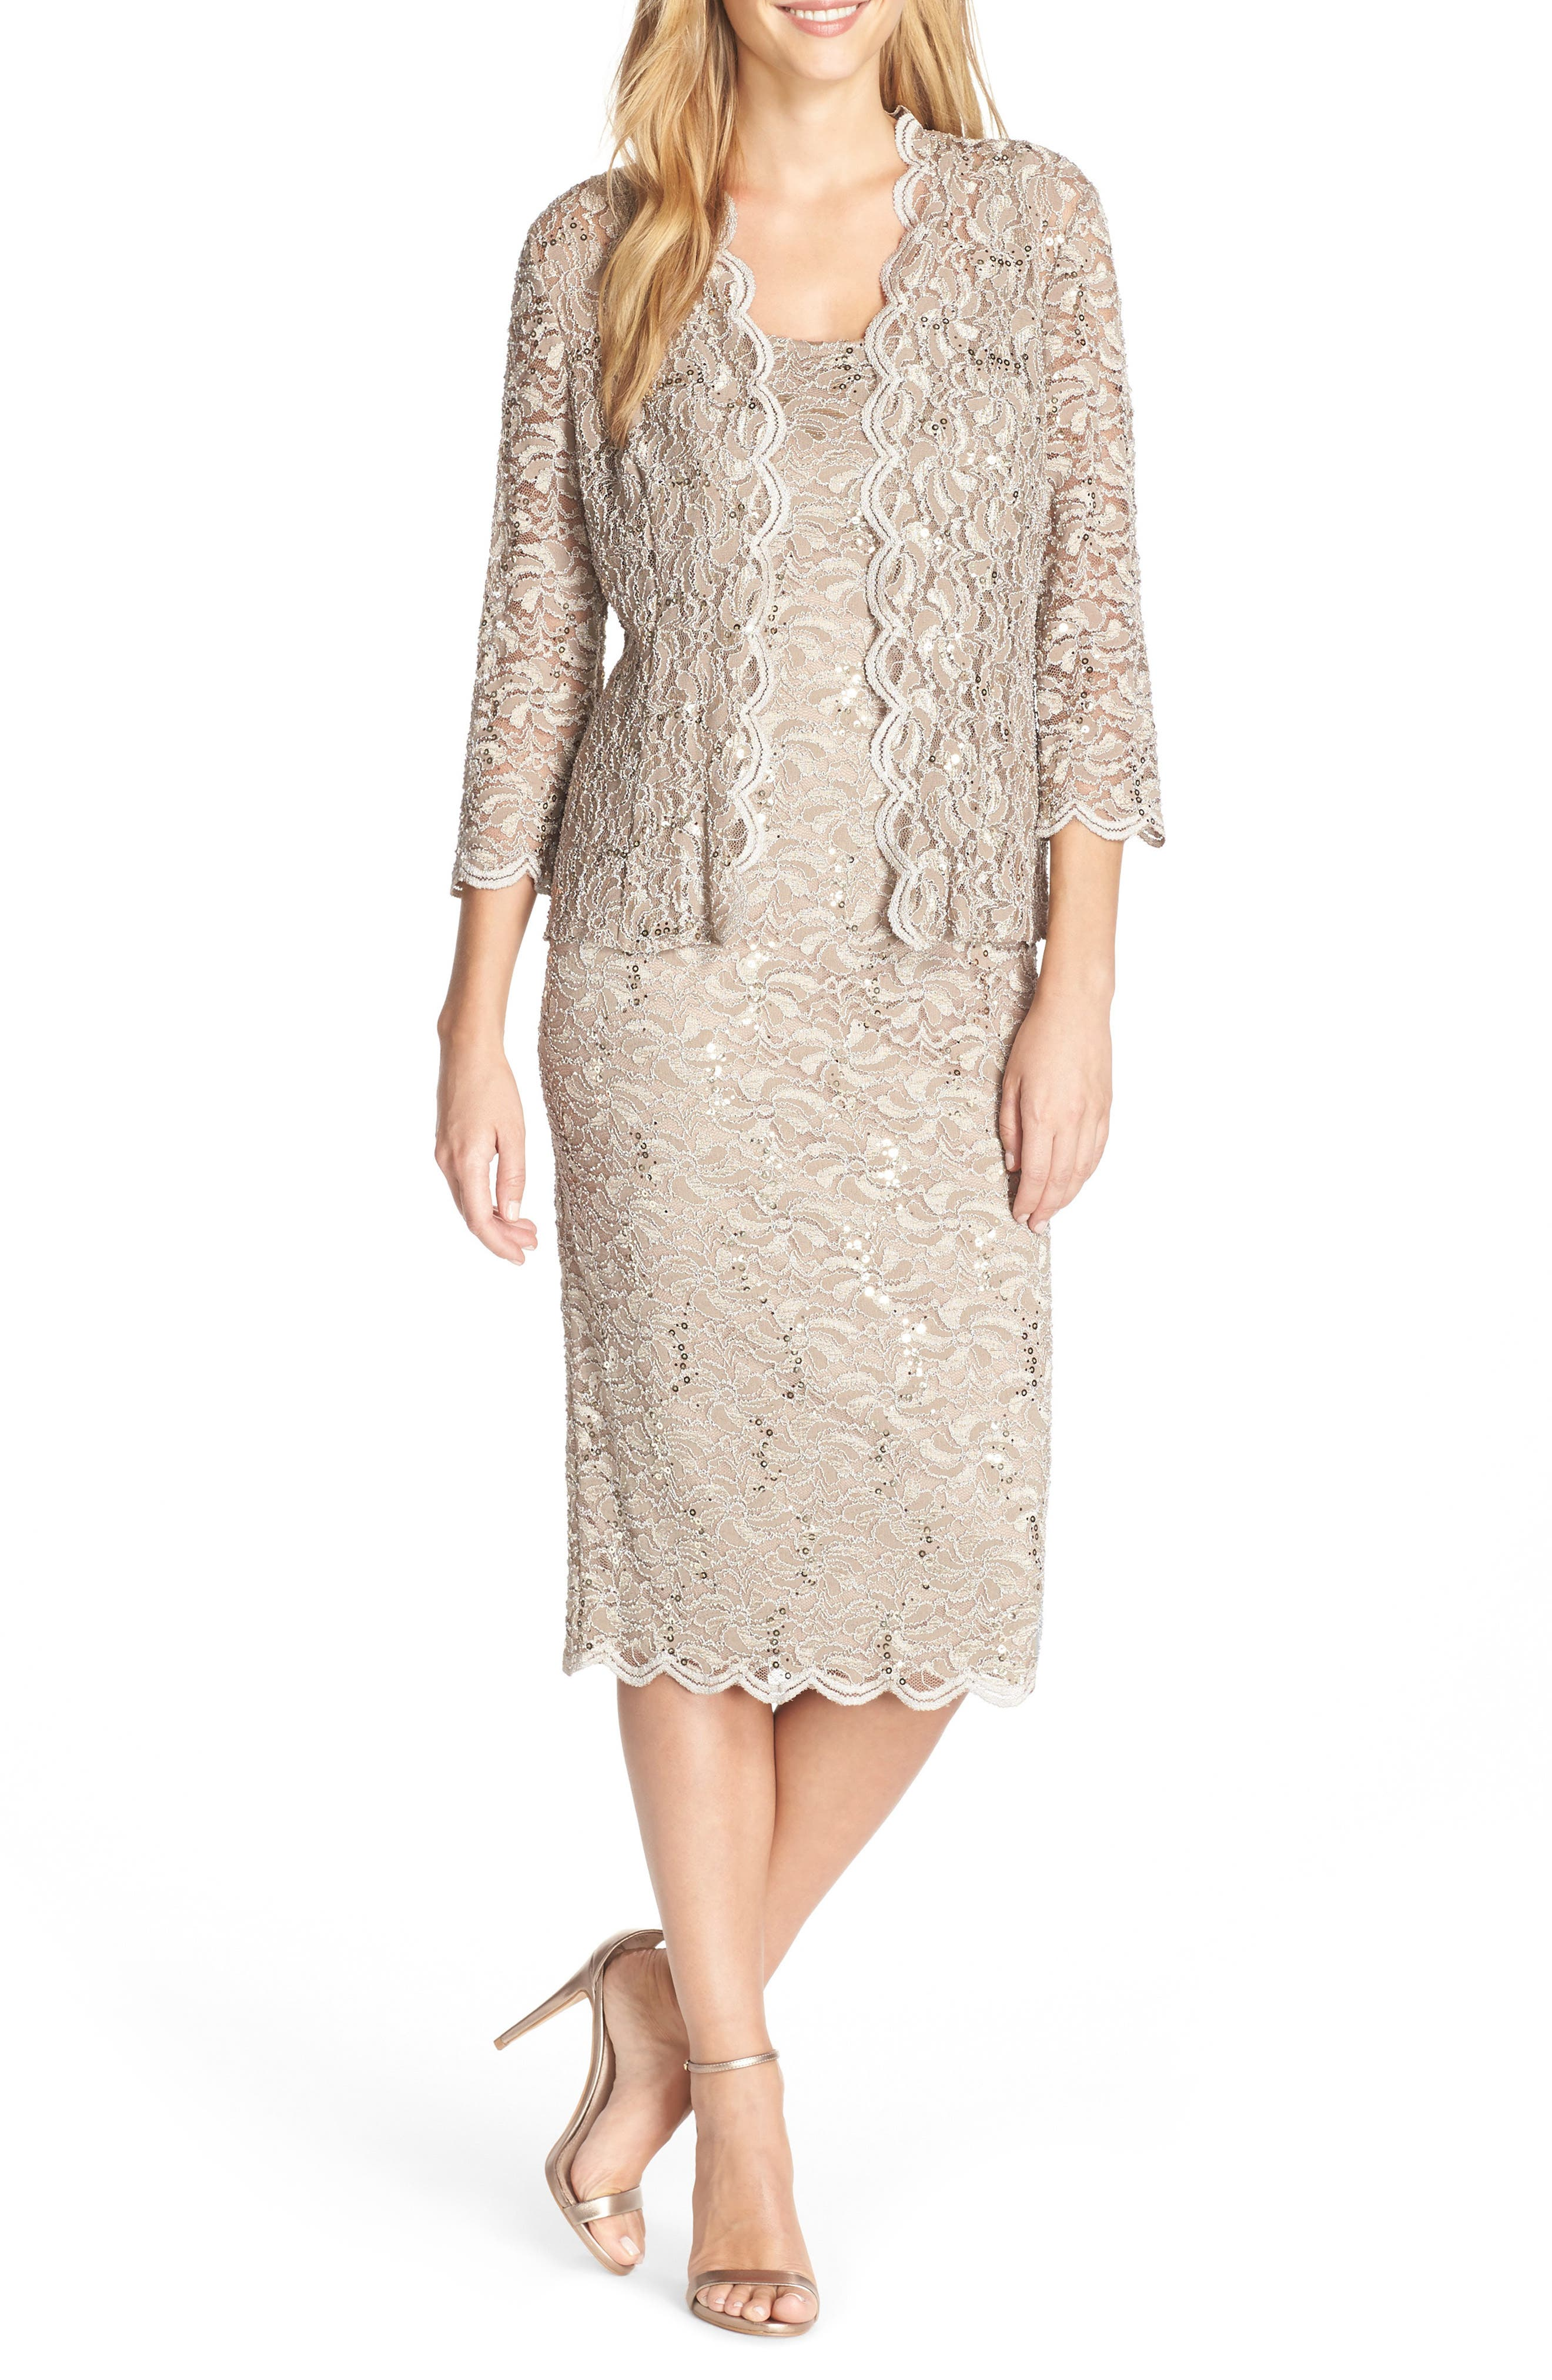 Effervescent sequins scatter along this lace sheath that comes with a matching jacket for an elegant way to cover your arms throughout the night. Style Name: Alex Evenings Lace Cocktail Dress With Jacket. Style Number: 1172609. Available in stores.